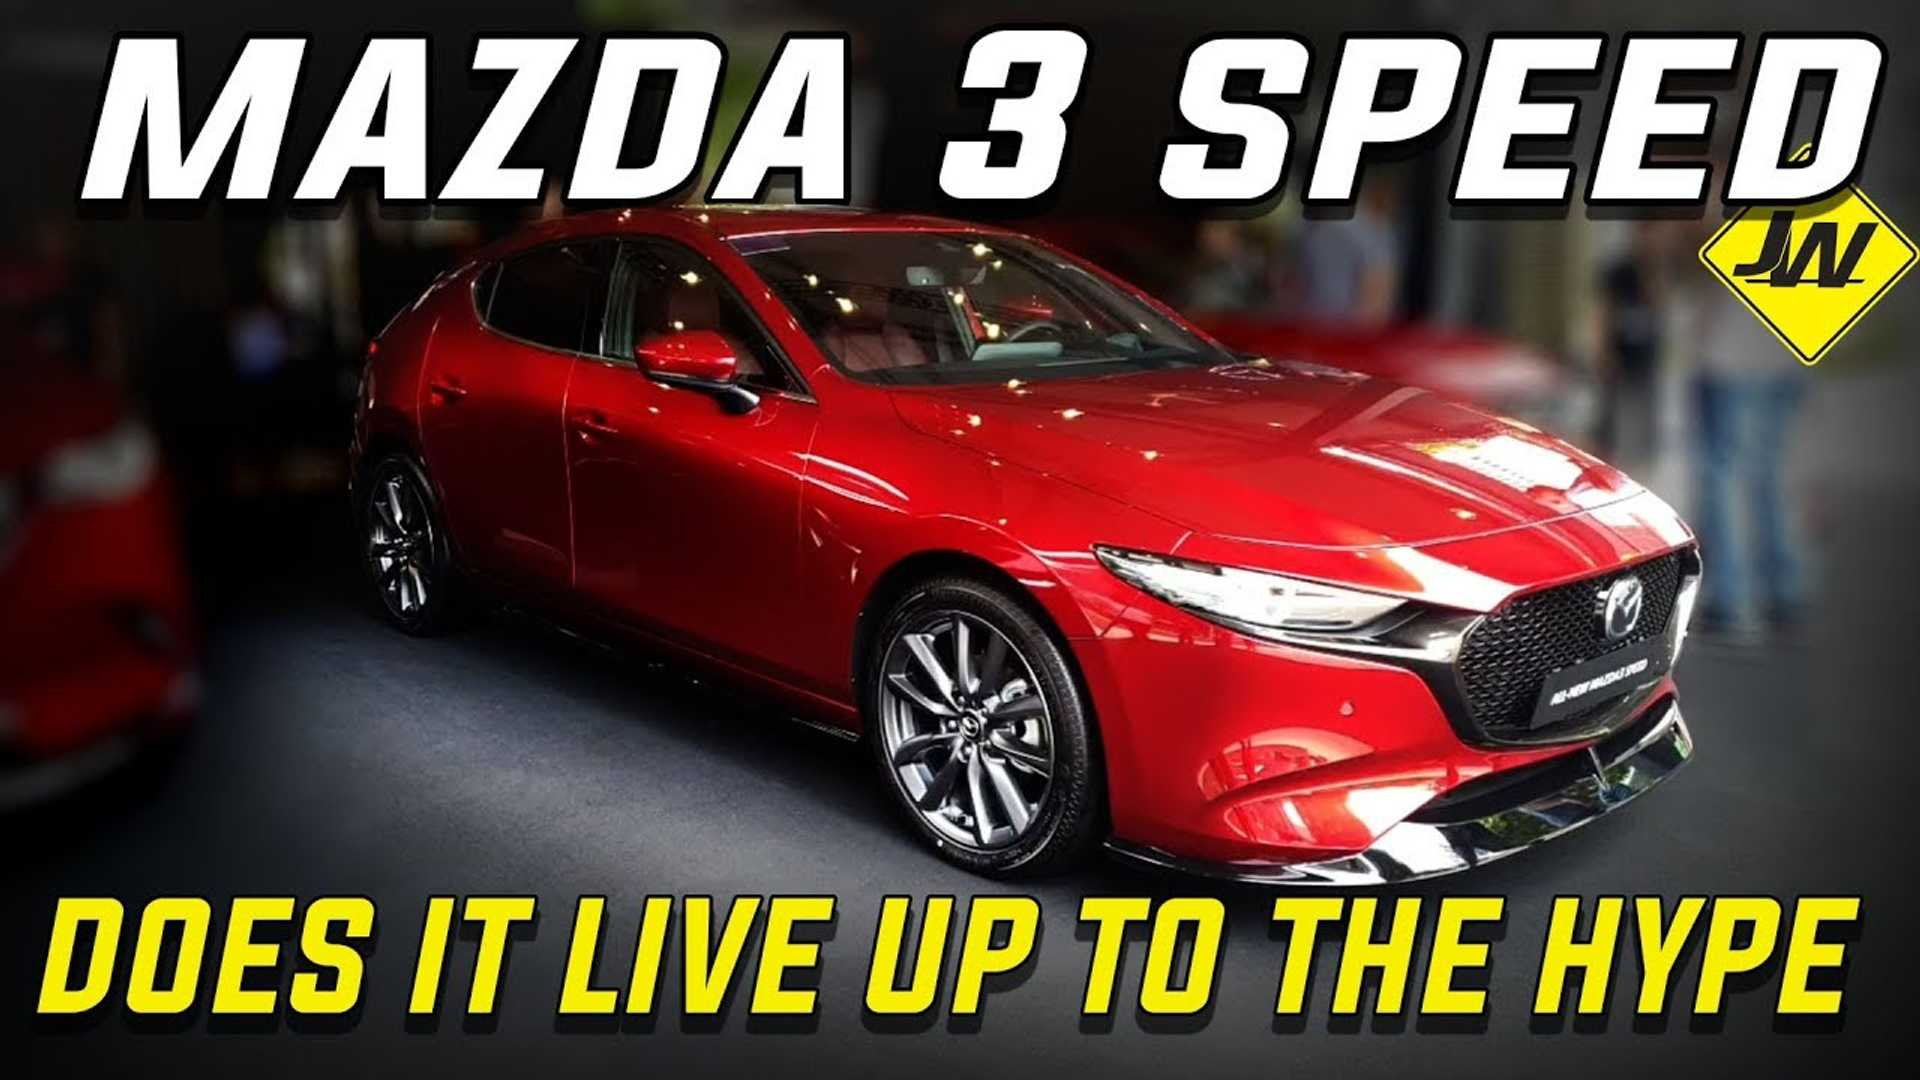 Mazda3 Speed is real and official, but it's not what you think